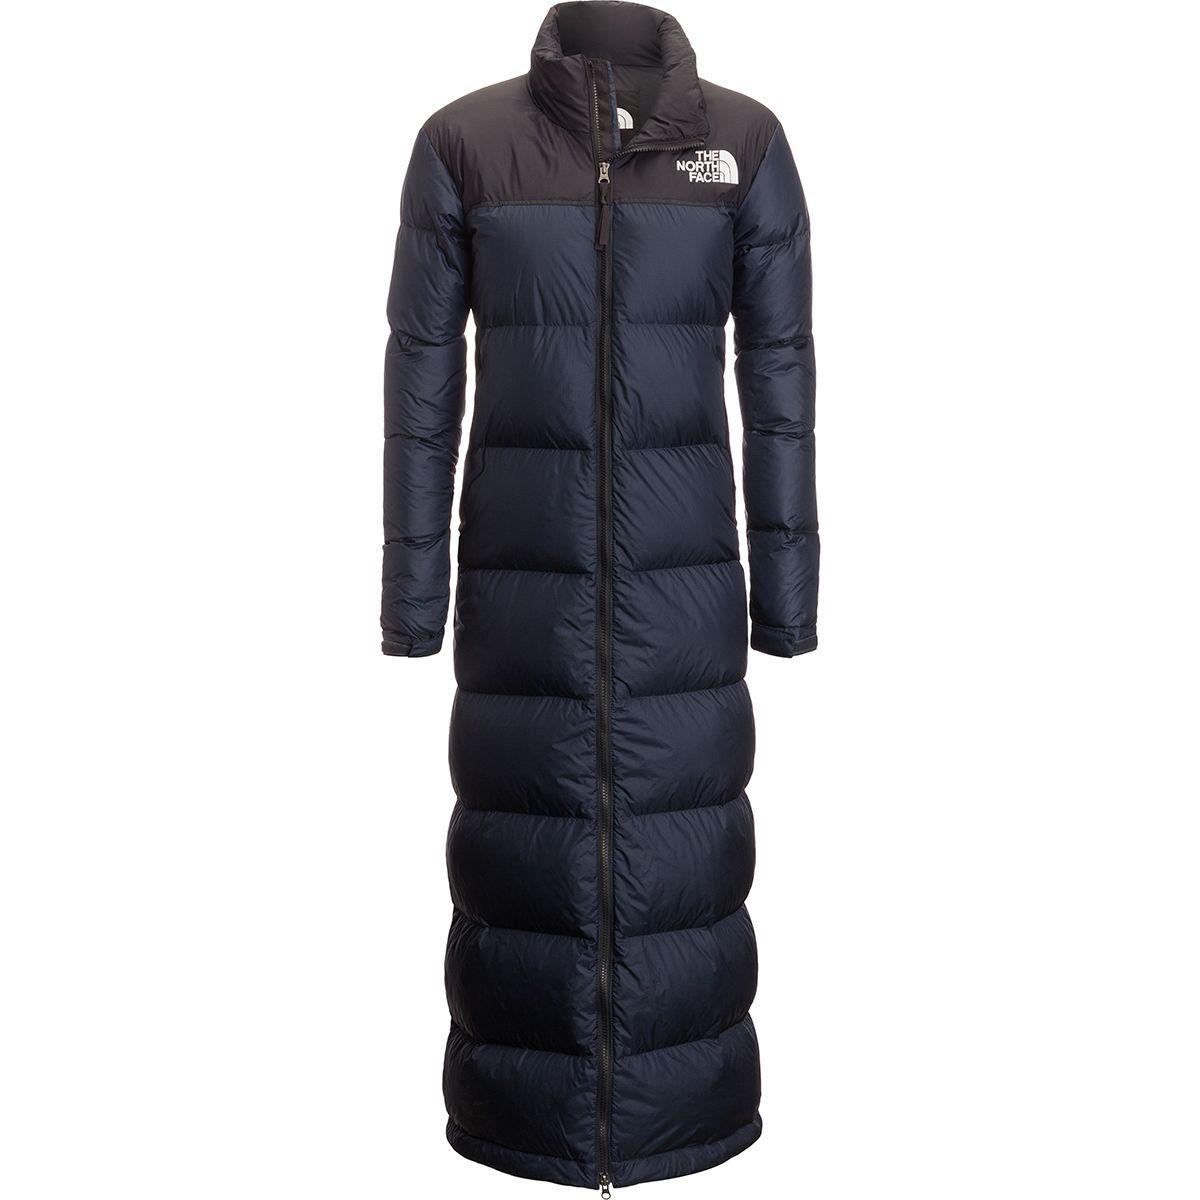 Lyst - The North Face Nuptse Duster Down Jacket in Blue 4dc13efde